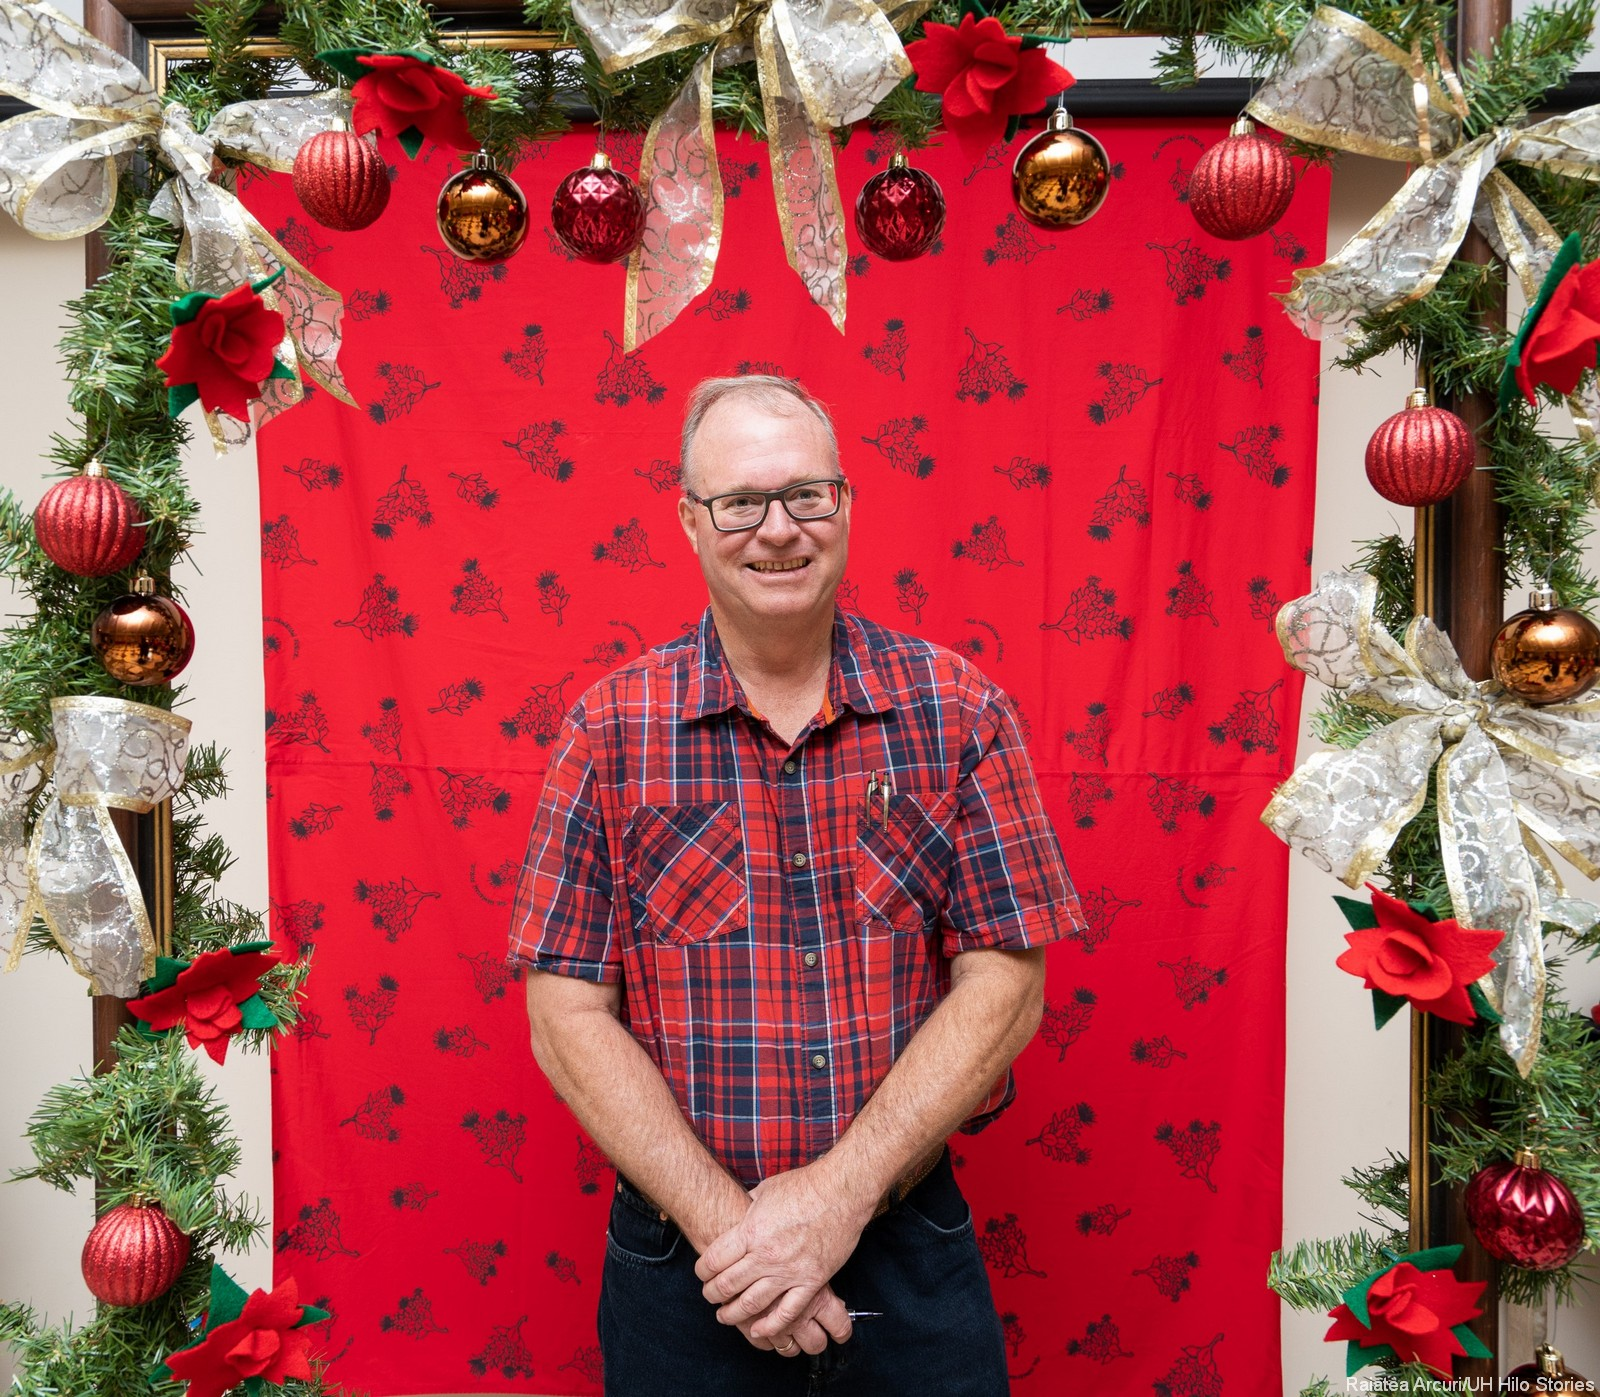 Faculty/staff/admin in Christmas costumes, standing behind a picture frame decorated with pine and bows. It's a silly, fun photo booth thing!